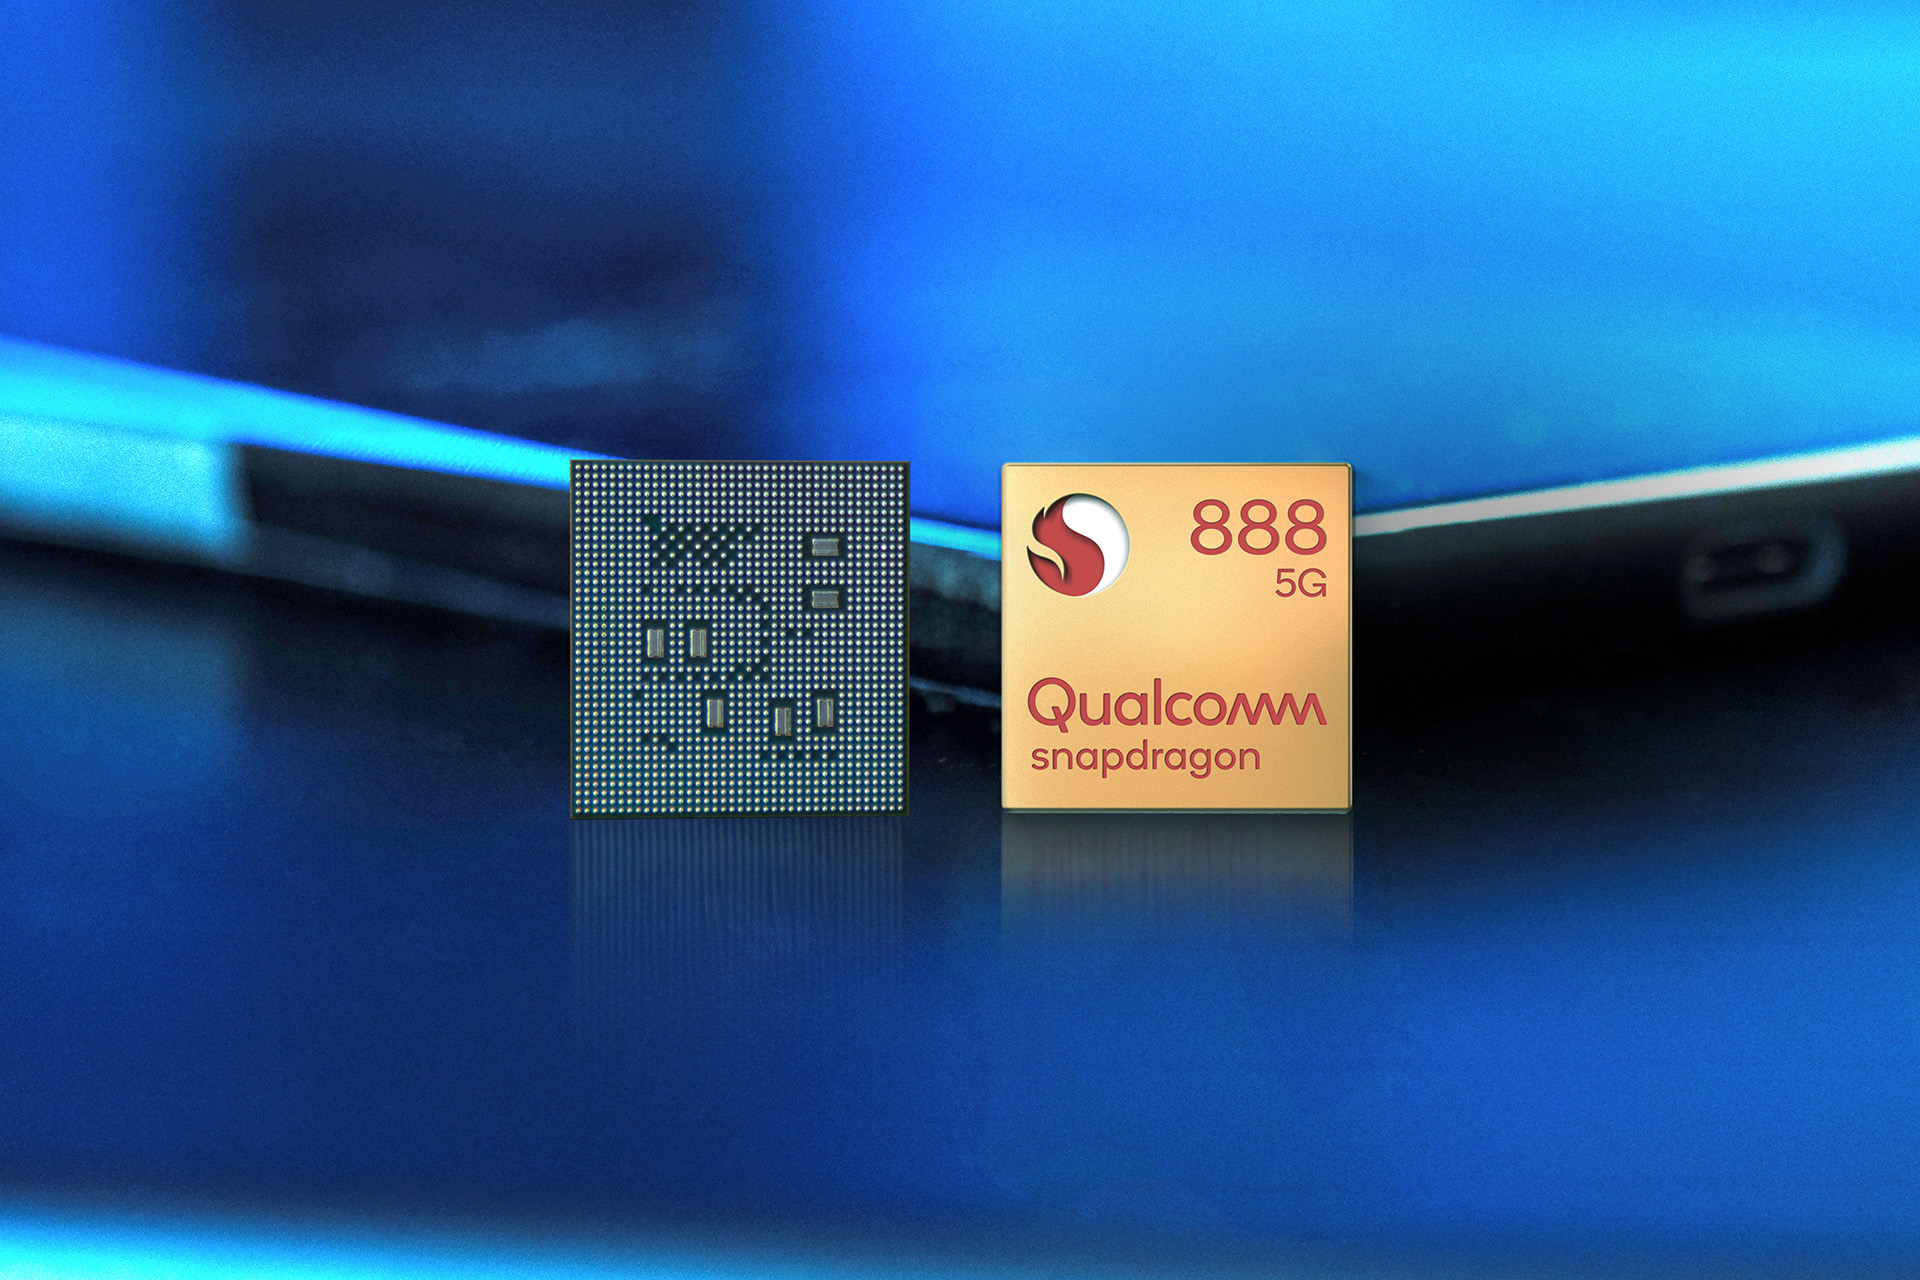 Qualcomm Snapdragon 888 SoC